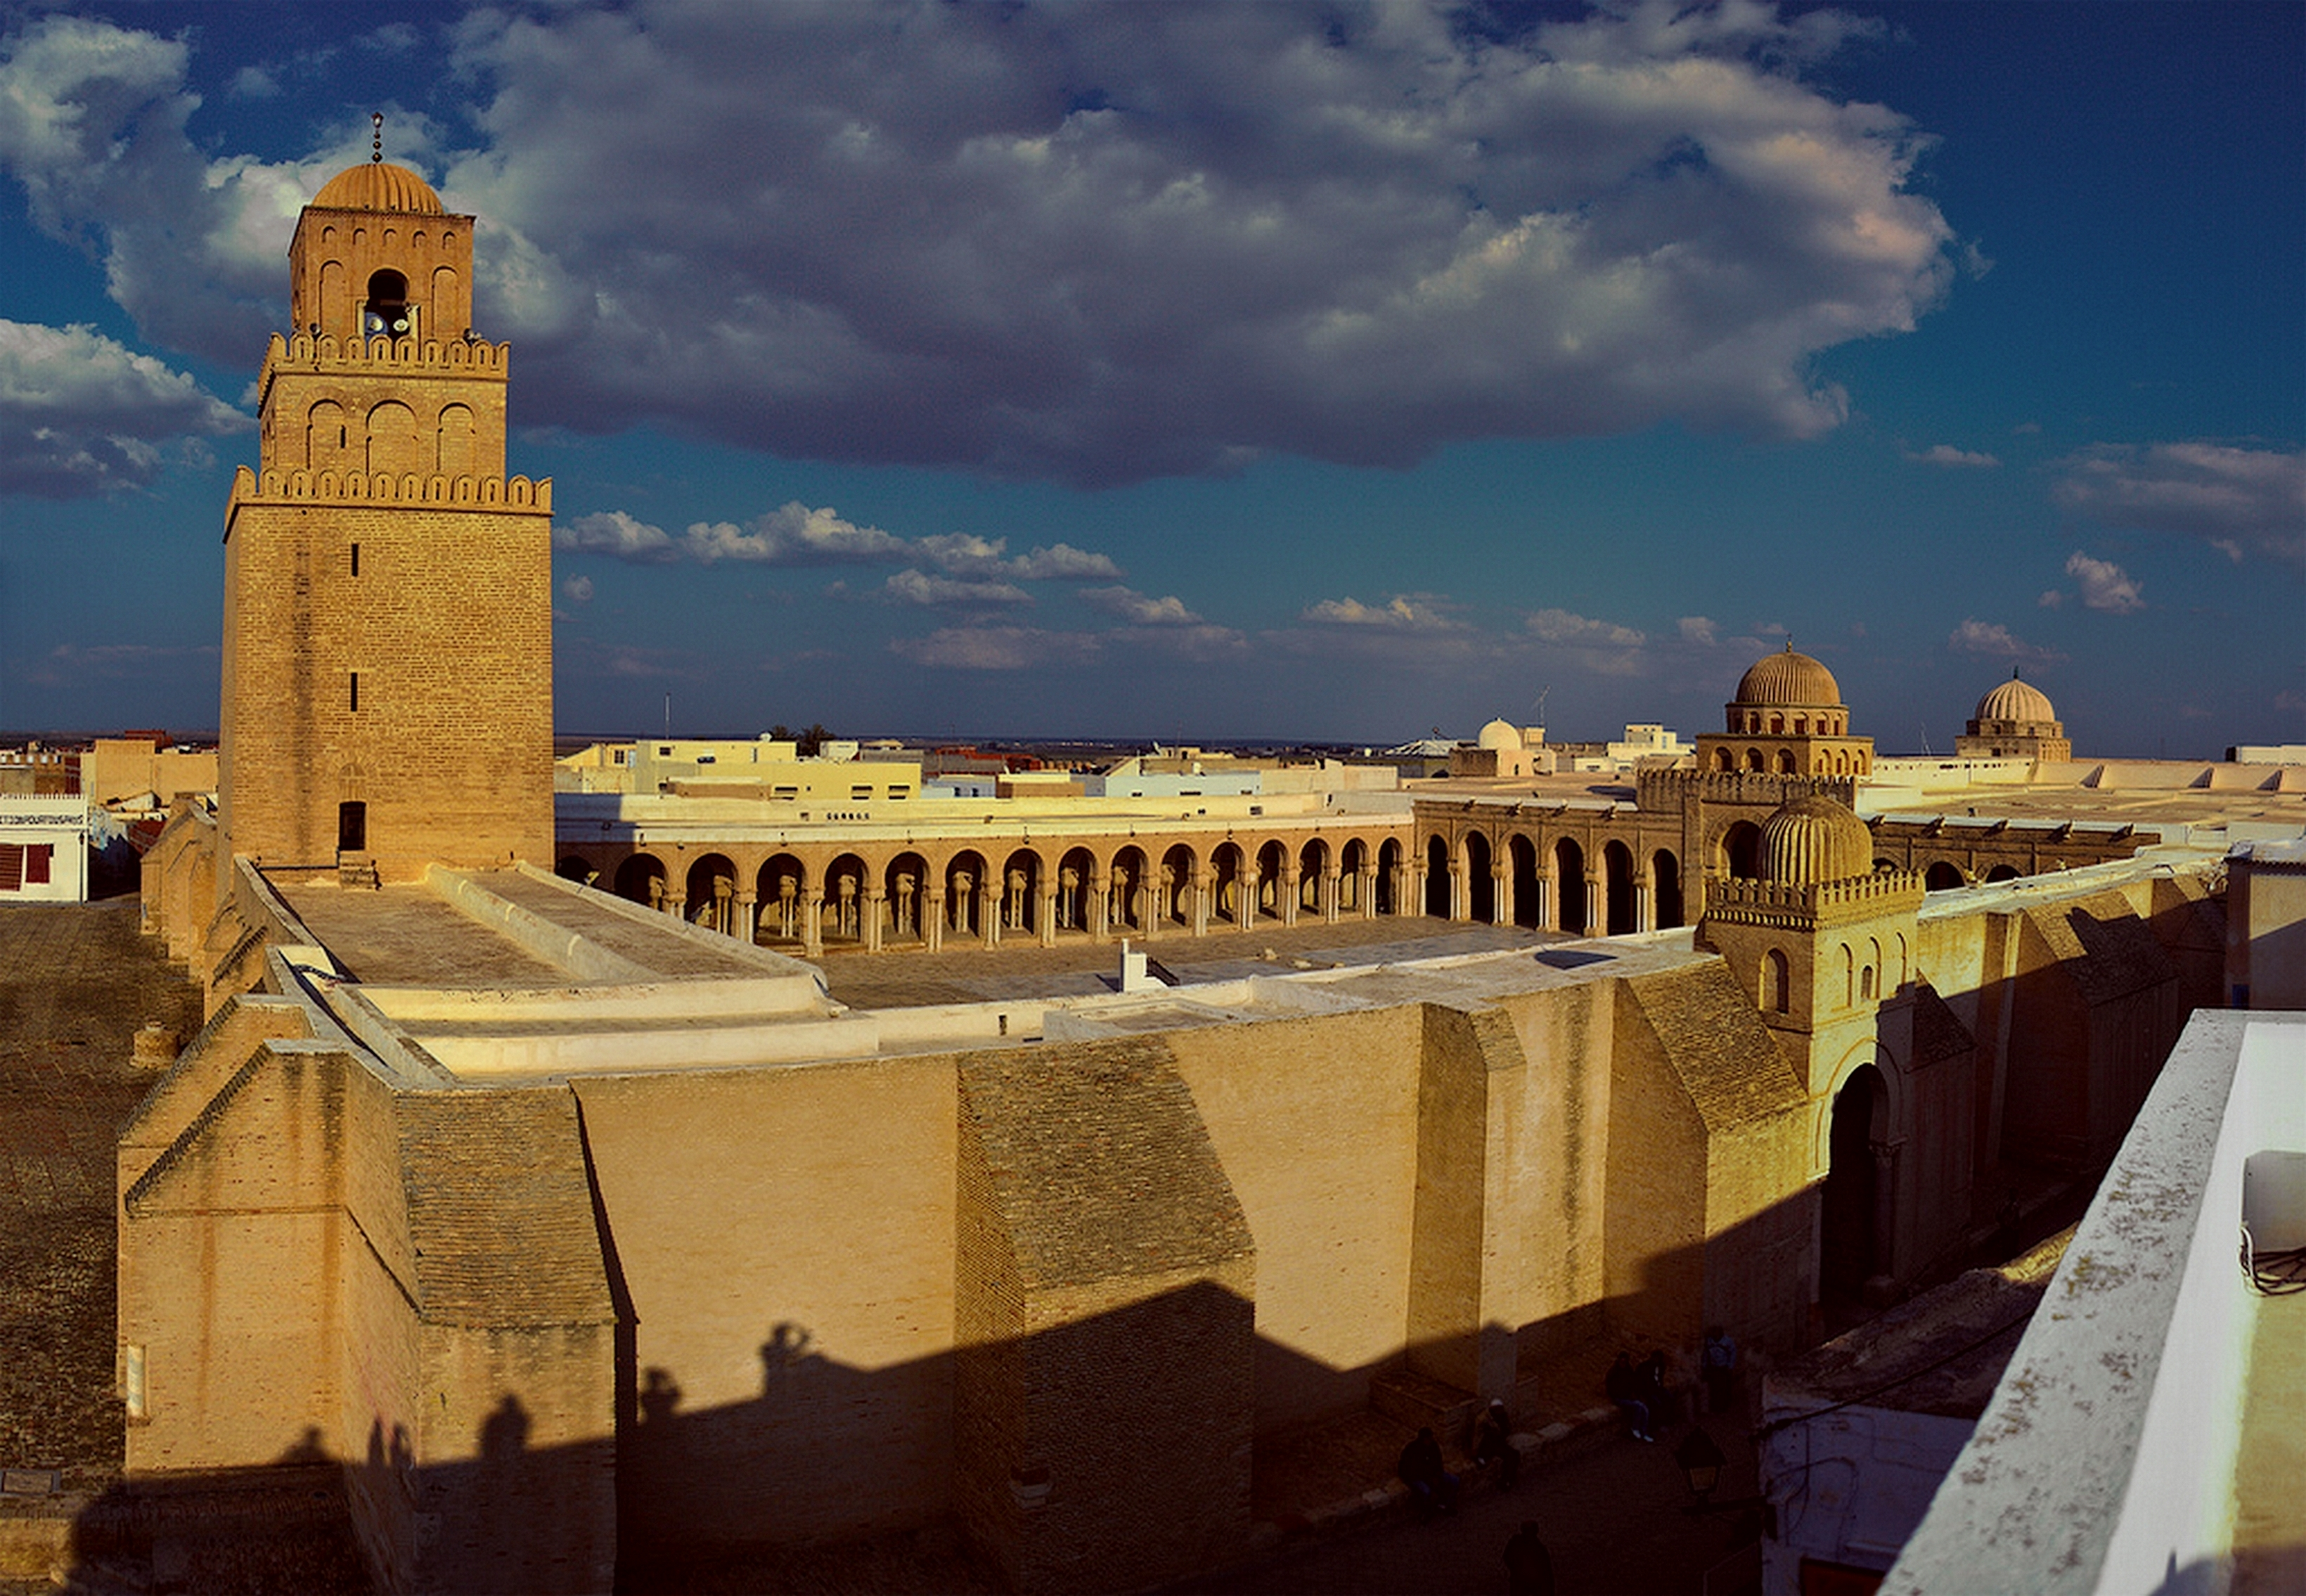 The most beautiful mosques to visit: Great Mosque of Kairouan, Tunisia